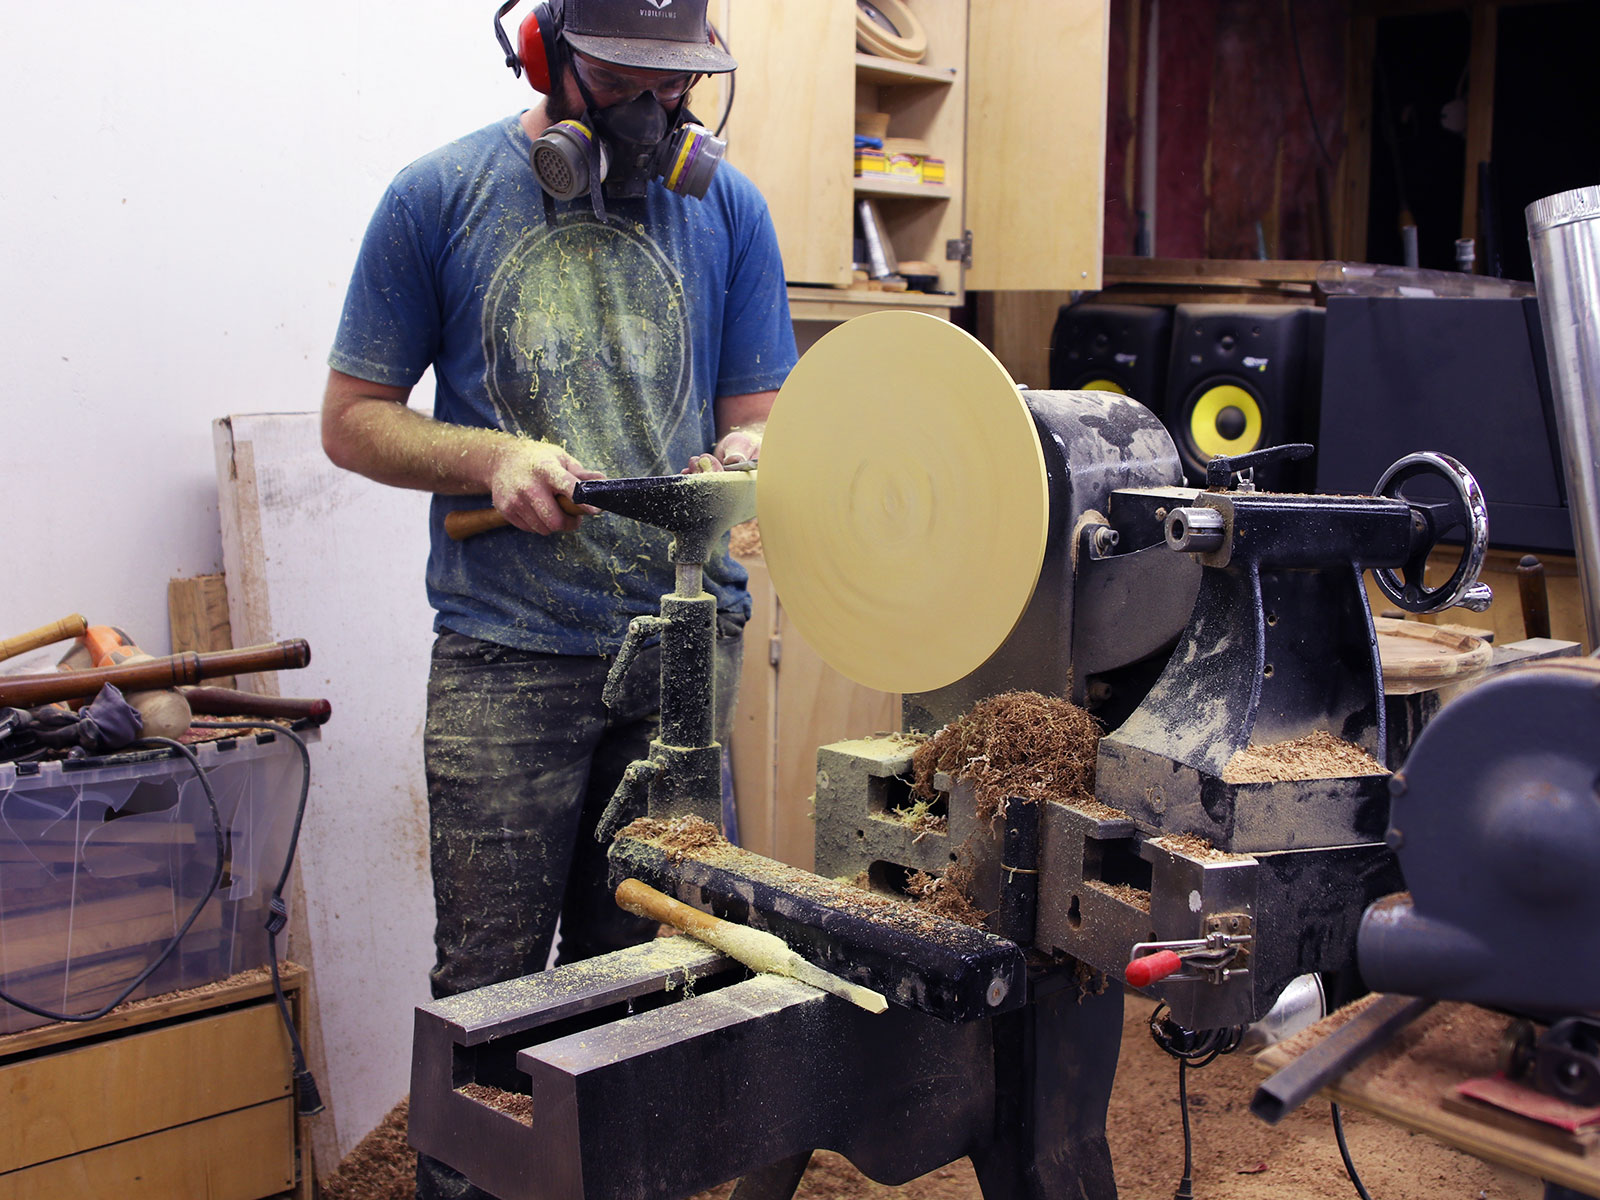 making wood pizza kyle toth